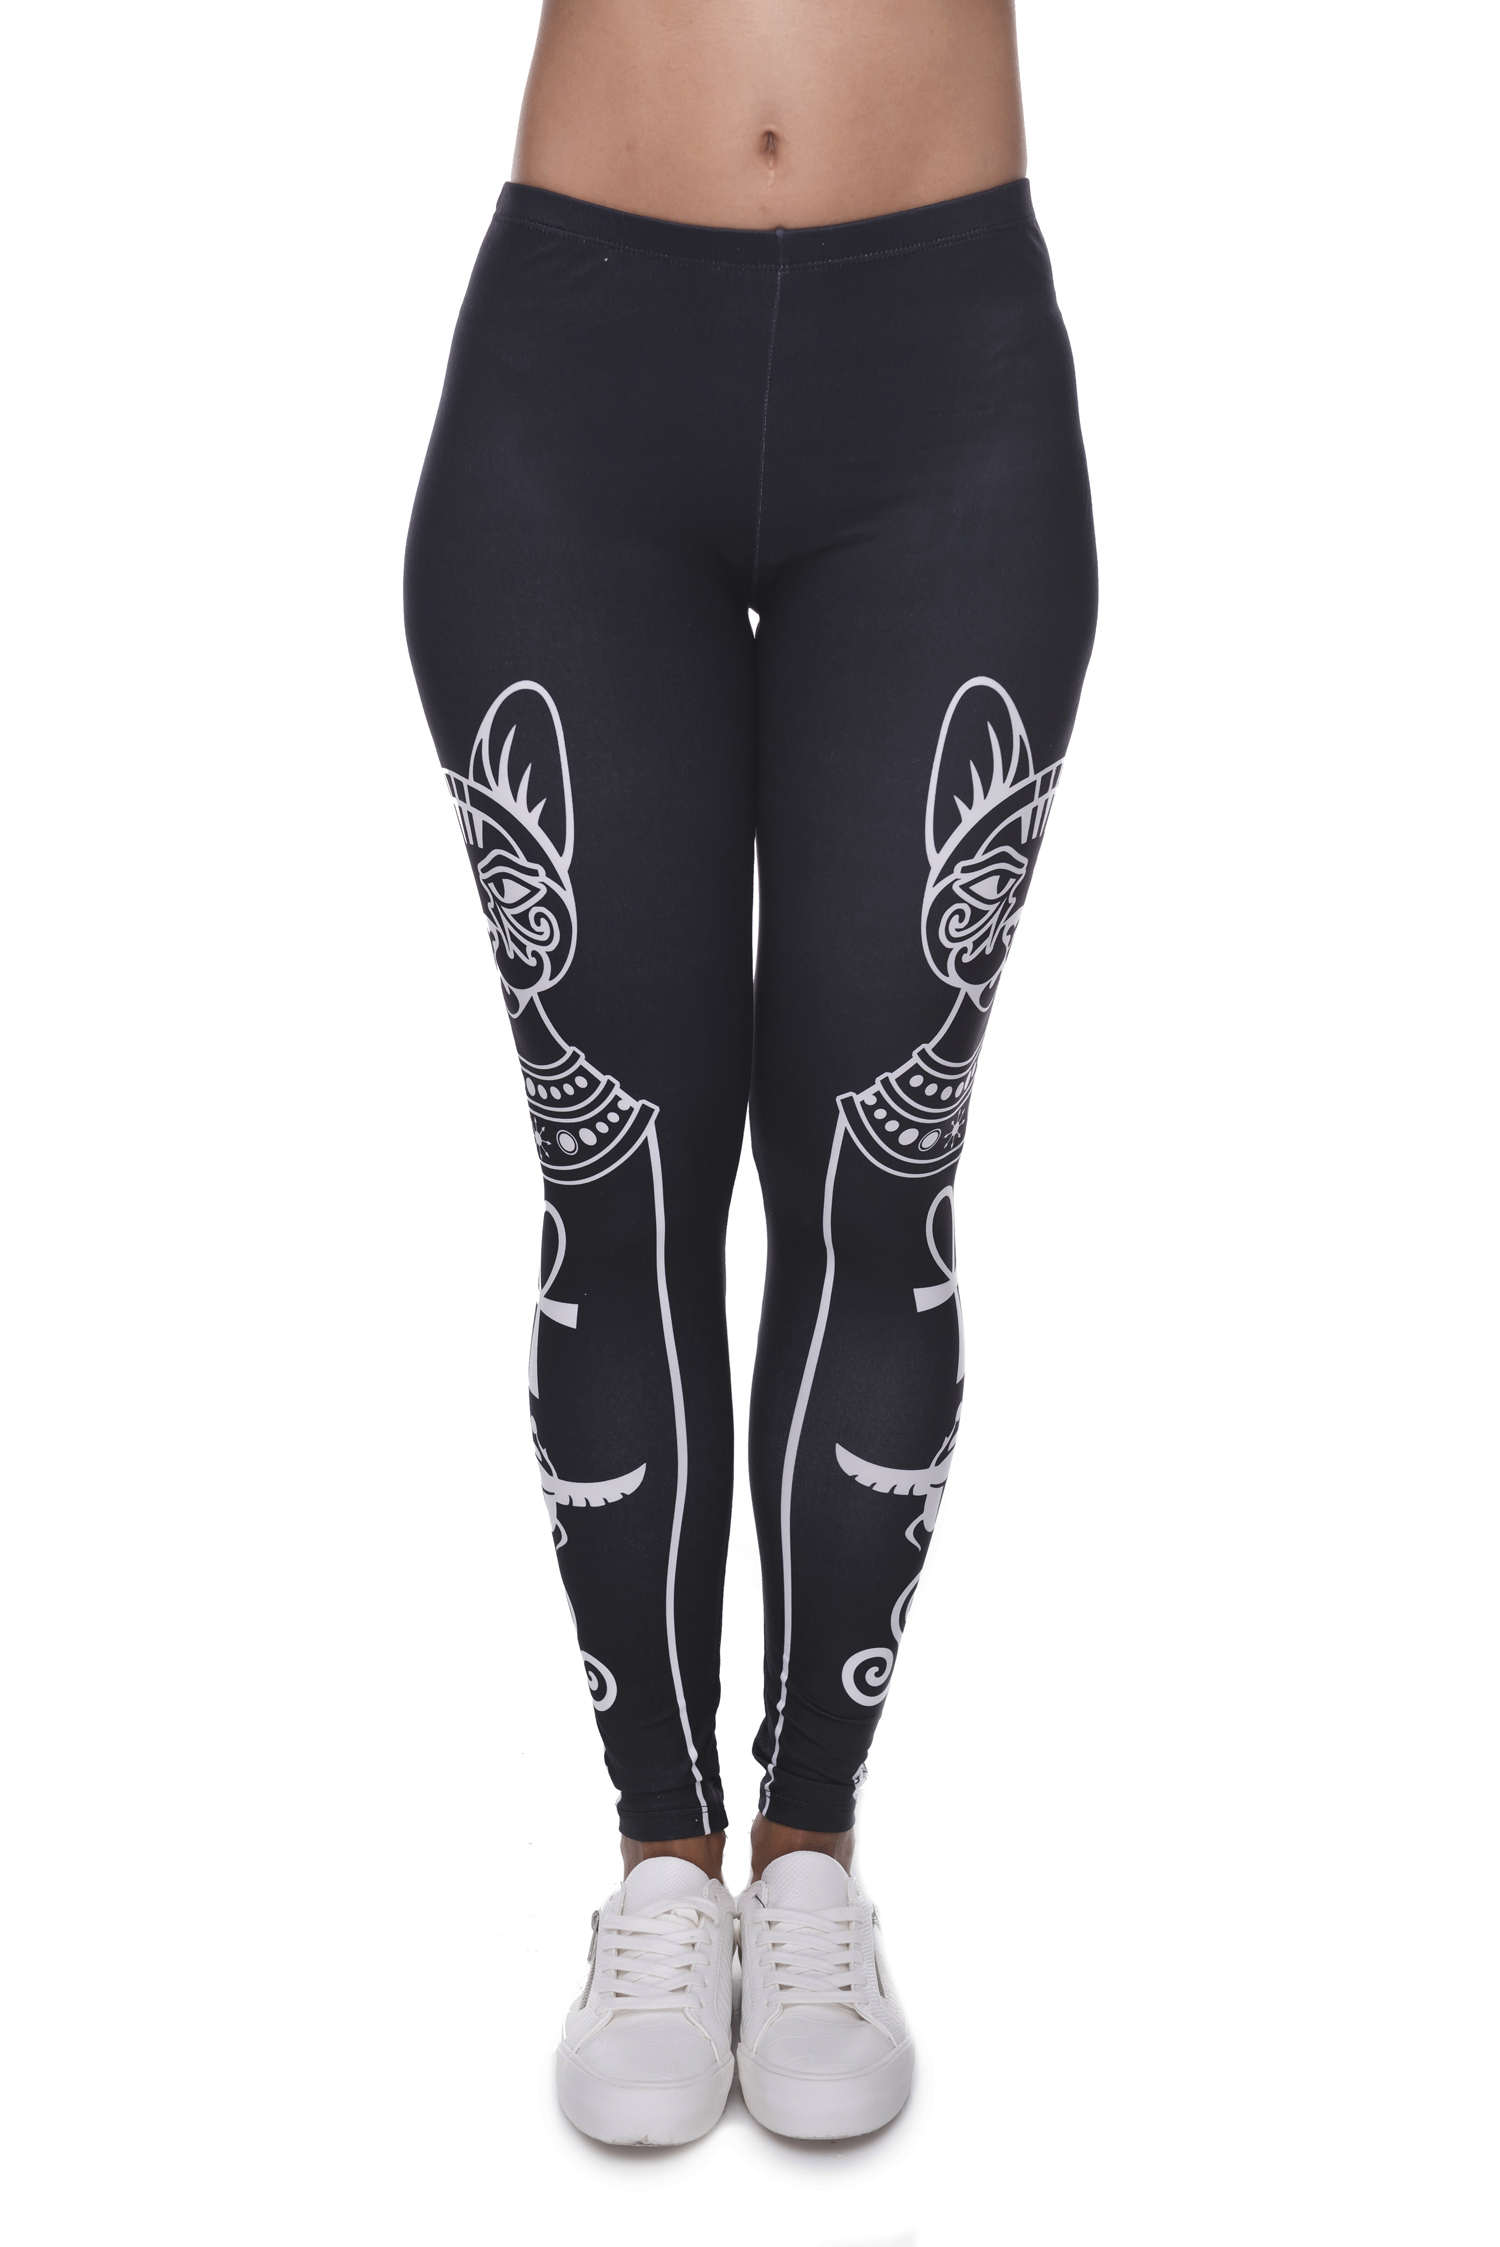 Egyptian Cat And Symbols Leggings Legeenz